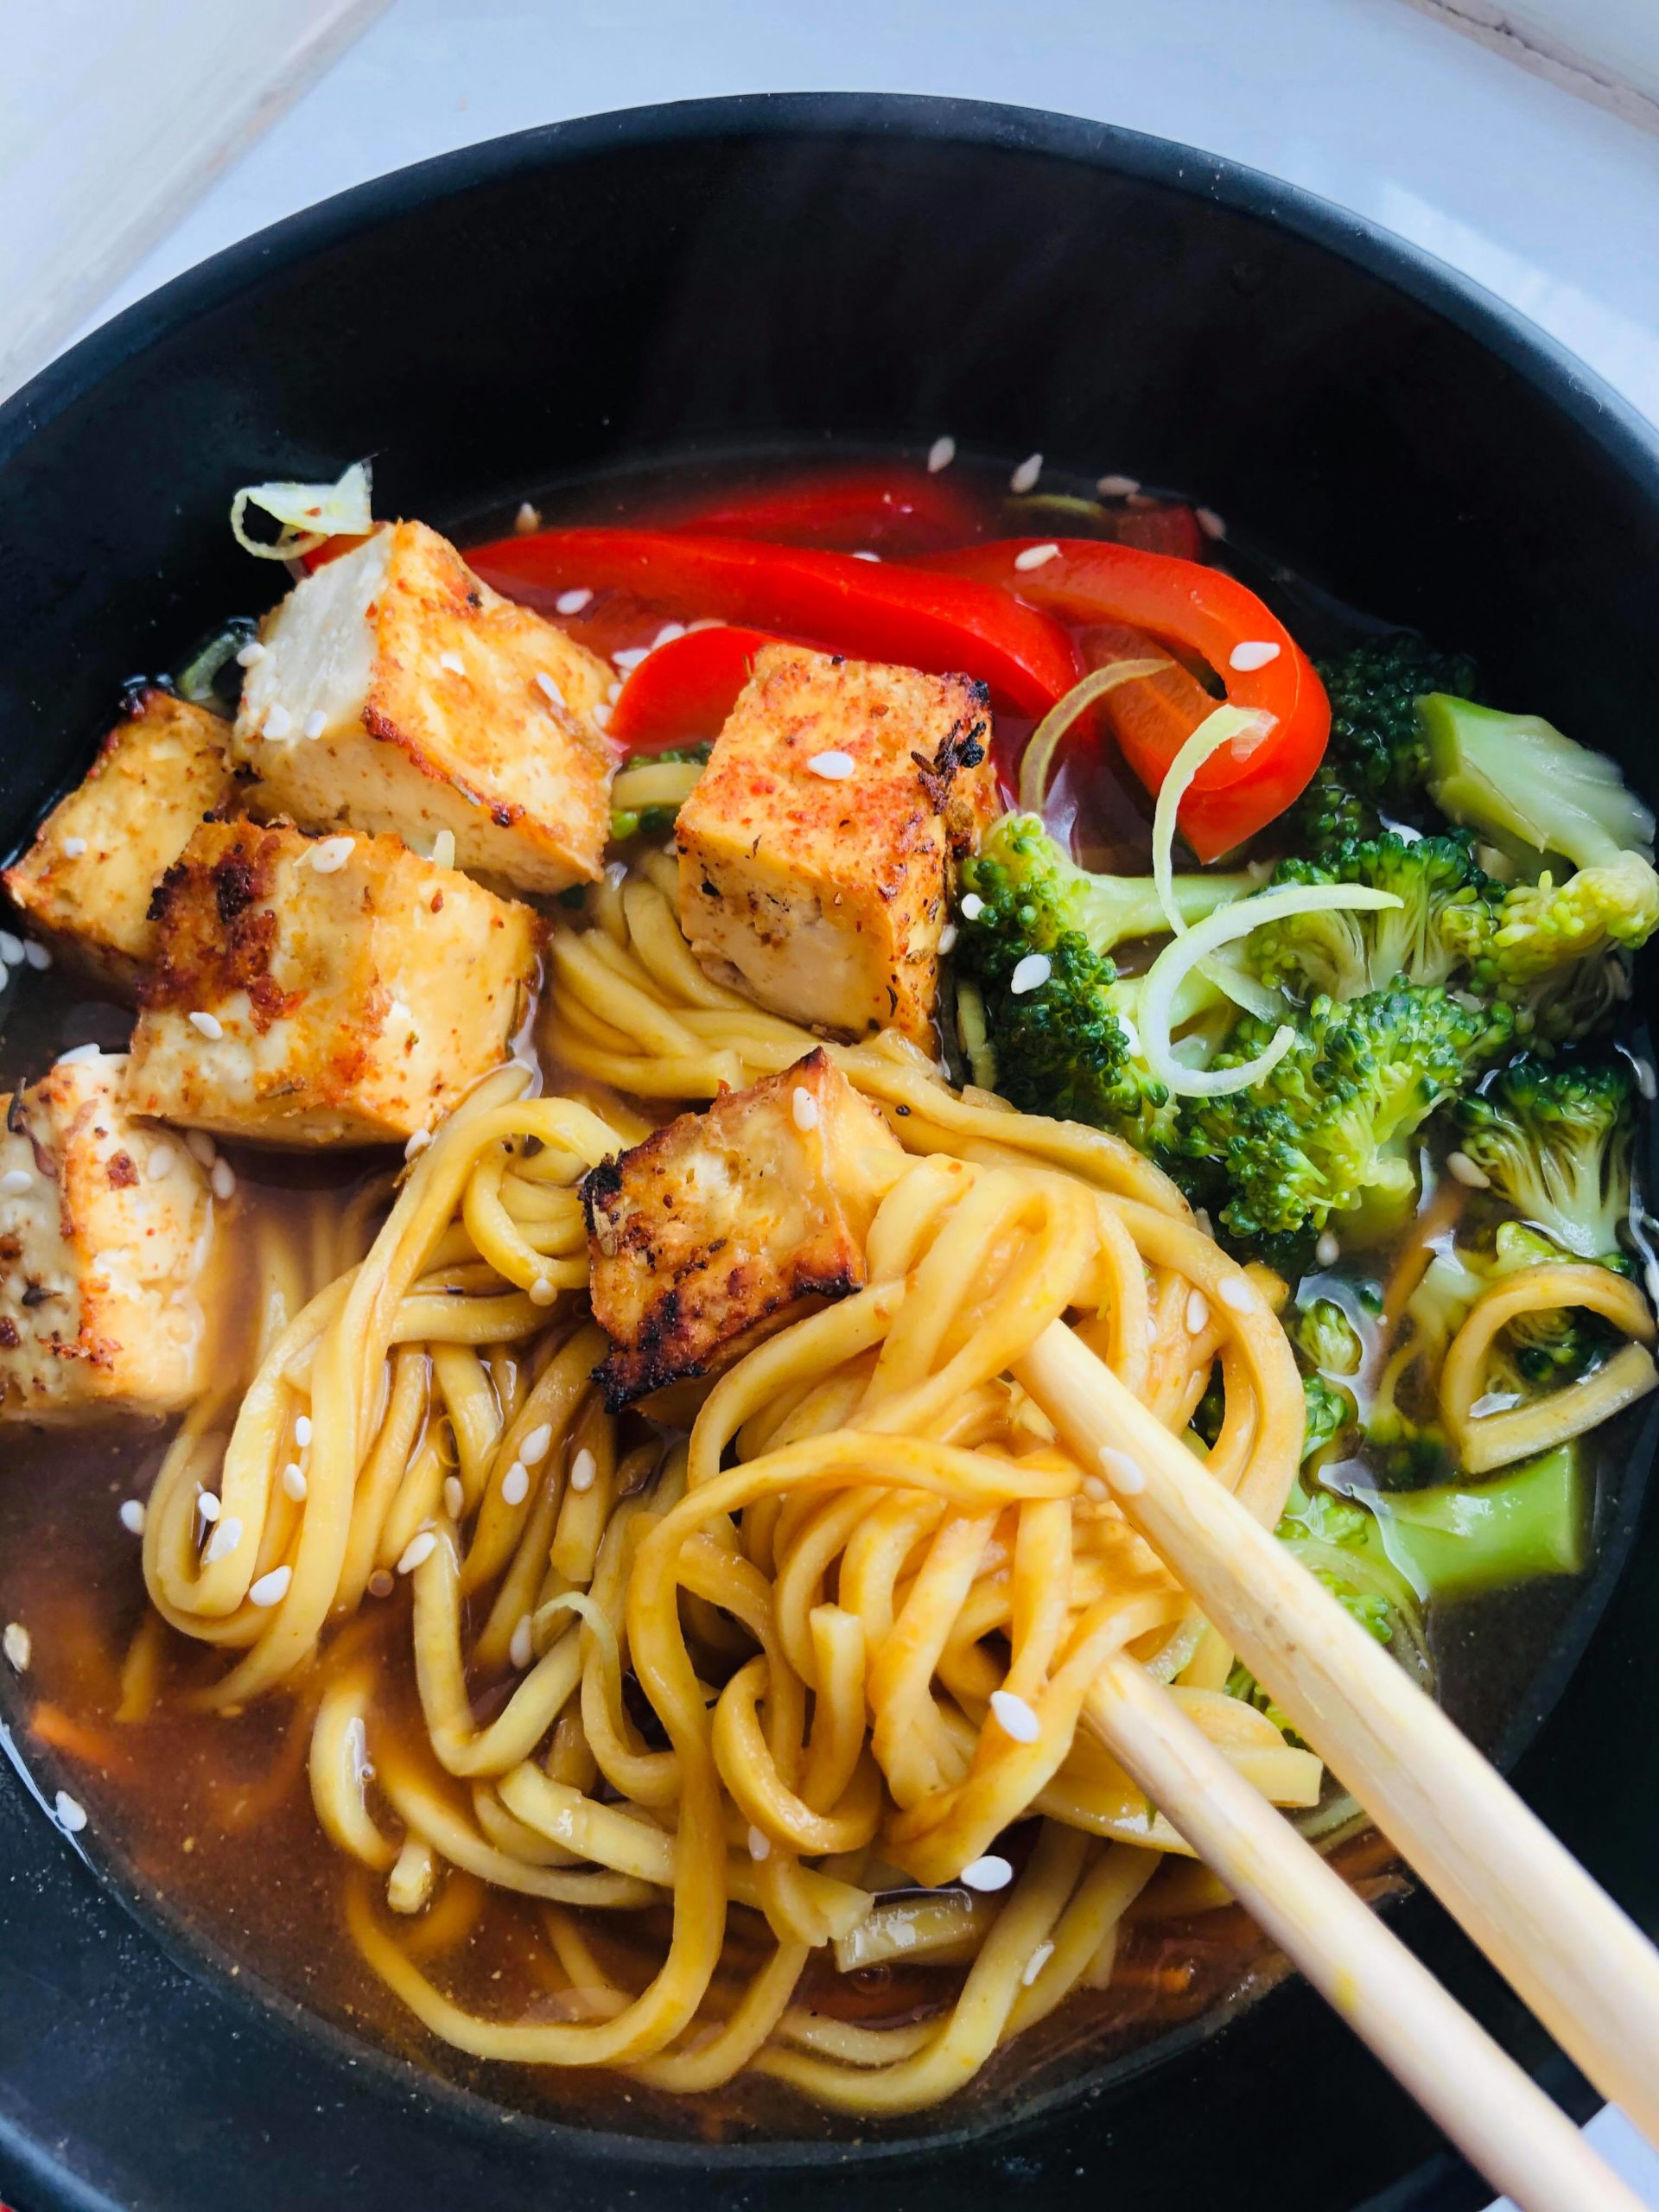 An Incredibly Easy Healthy Vegan Ramen, I call it cheats ramen because it's SOO EASY! All you need is one pot, some vegetable stock, and a few veggies